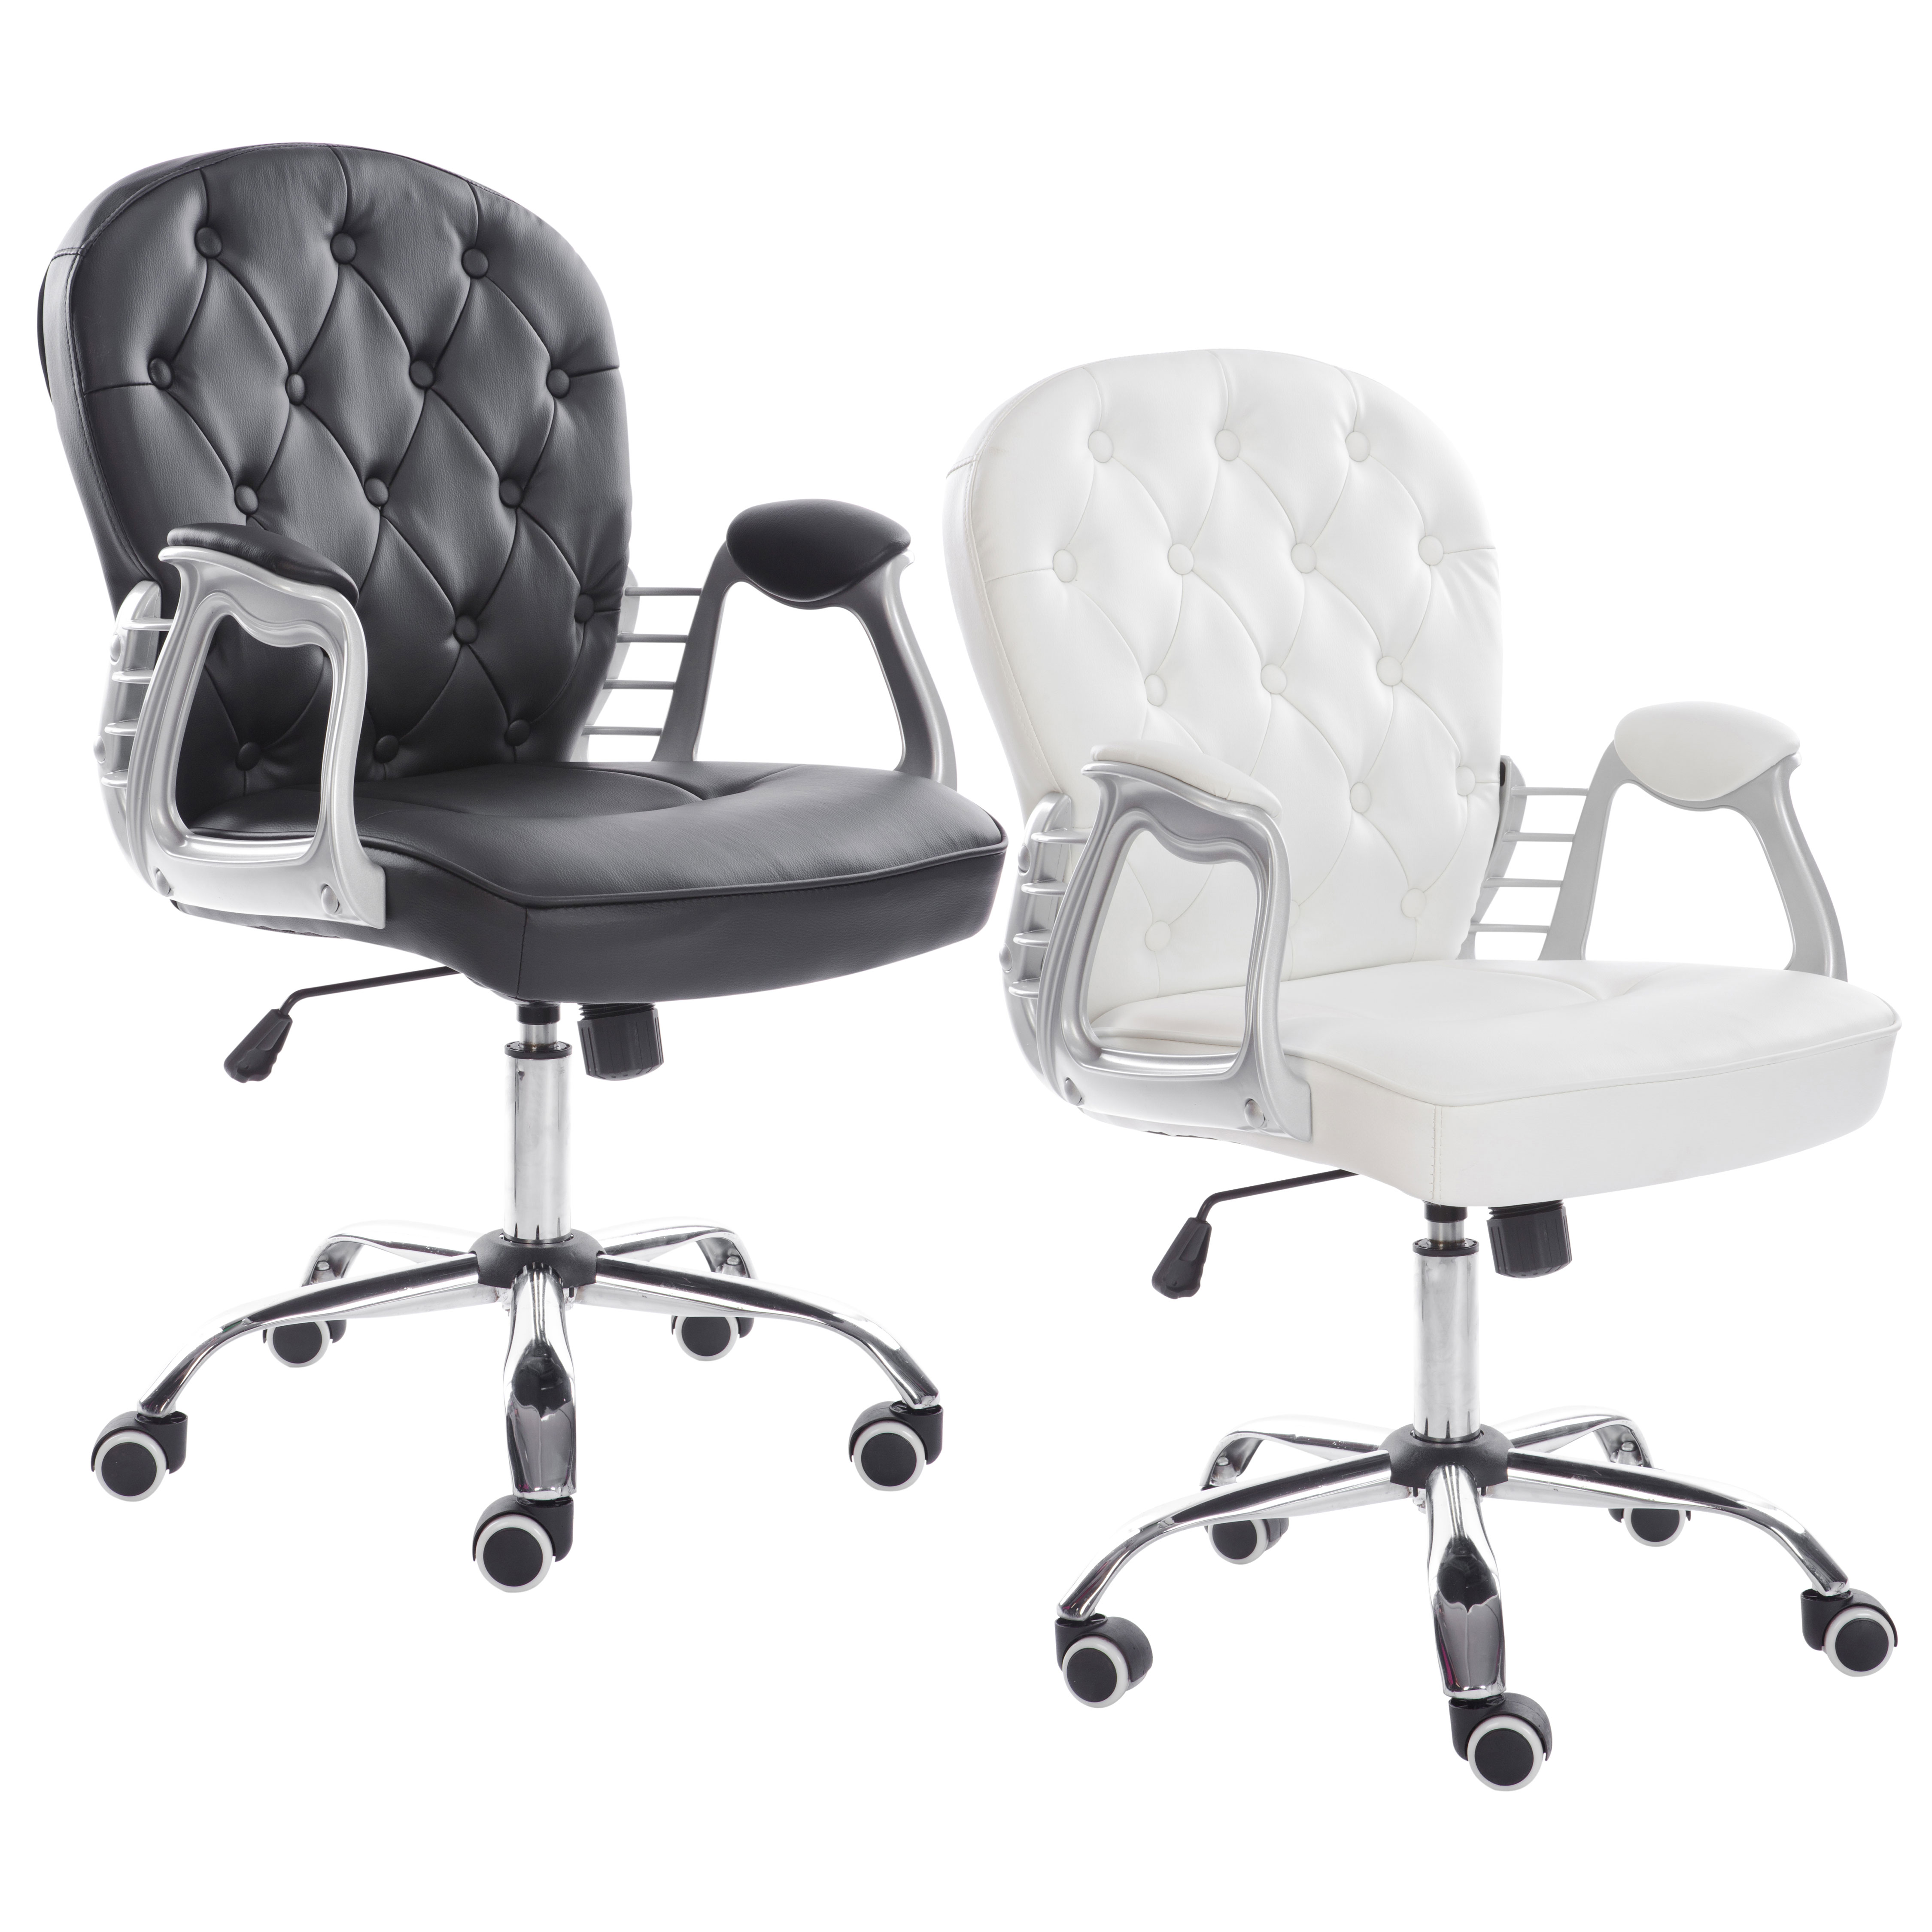 Details About Premium Retro Office Chair Black Or White Leather Armchair Gas Lift Chrome Base